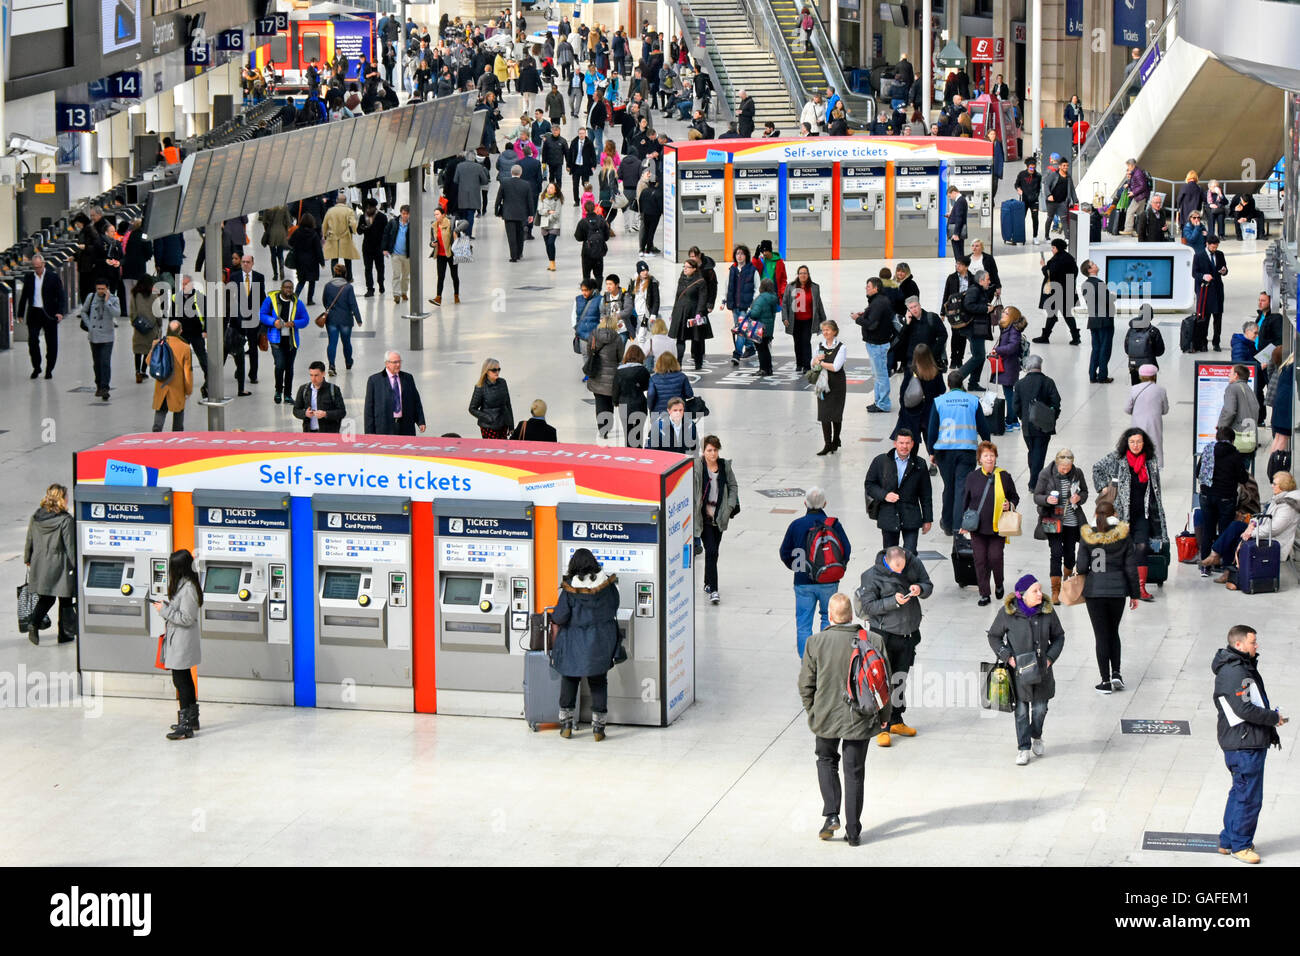 Looking down on passengers & commuters and Self Service ticket machines at Waterloo train Station London England - Stock Image